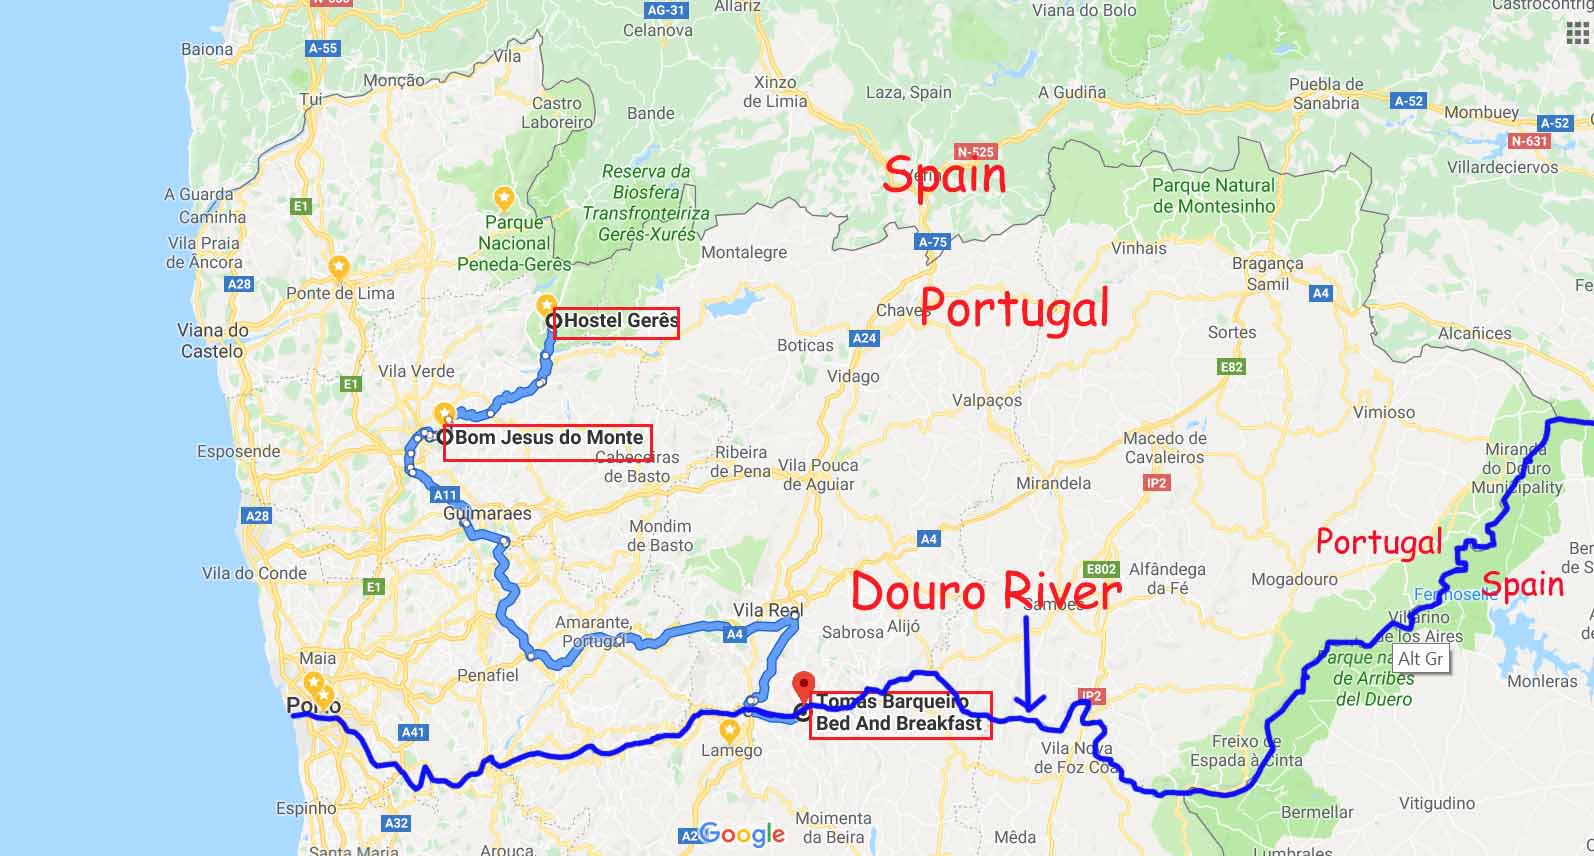 Route from Peneda-Geres National Park to Douro River